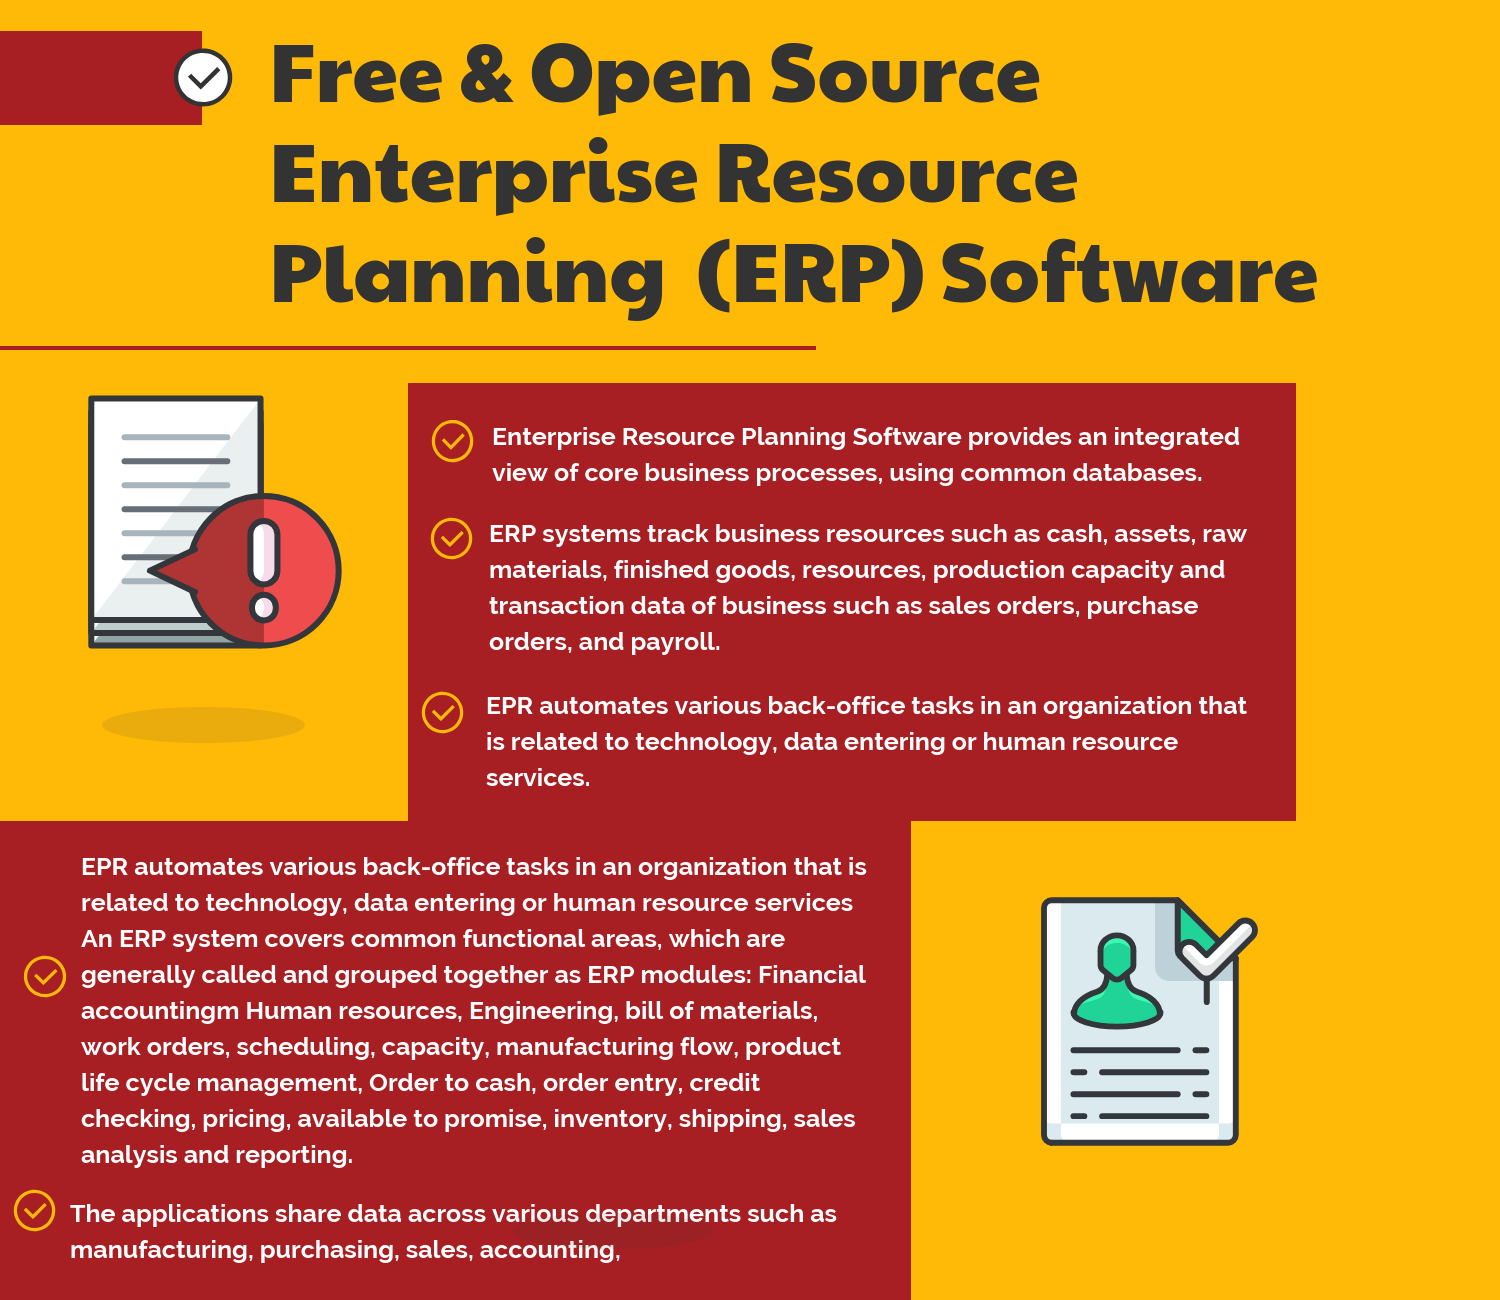 34 Free Open Source And Top Enterprise Resource Planning Erp Software In 2020 Reviews Features Pricing Comparison Pat Research B2b Reviews Buying Gu Document Management System Enterprise Software